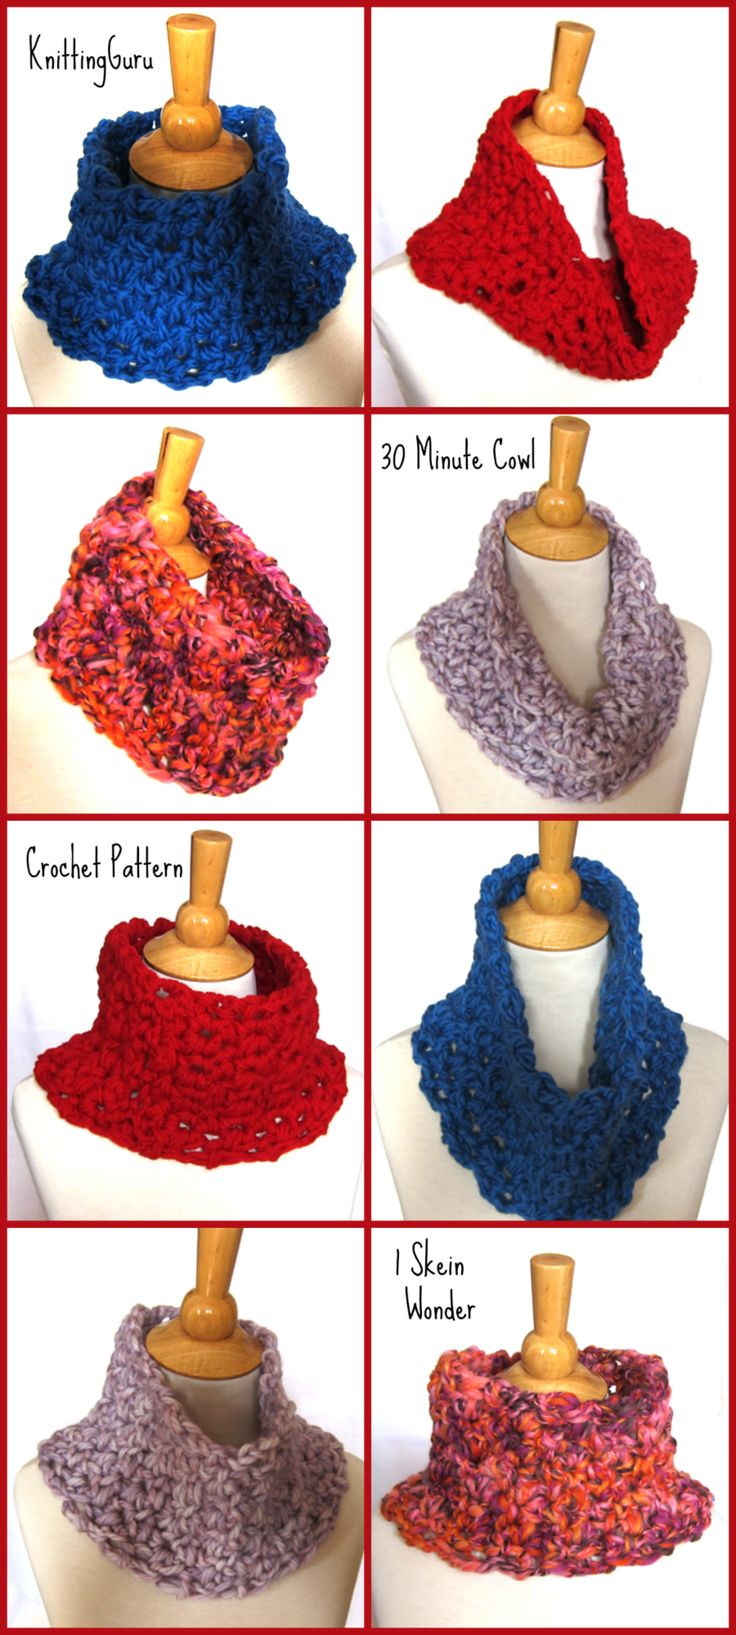 The 30 Minute Cowl is Fast and Easy to Crochet. Great beginner pattern! More info at http://www.craftsy.com/KnittingGuru and at http://www.KnittingGuru.etsy.com.